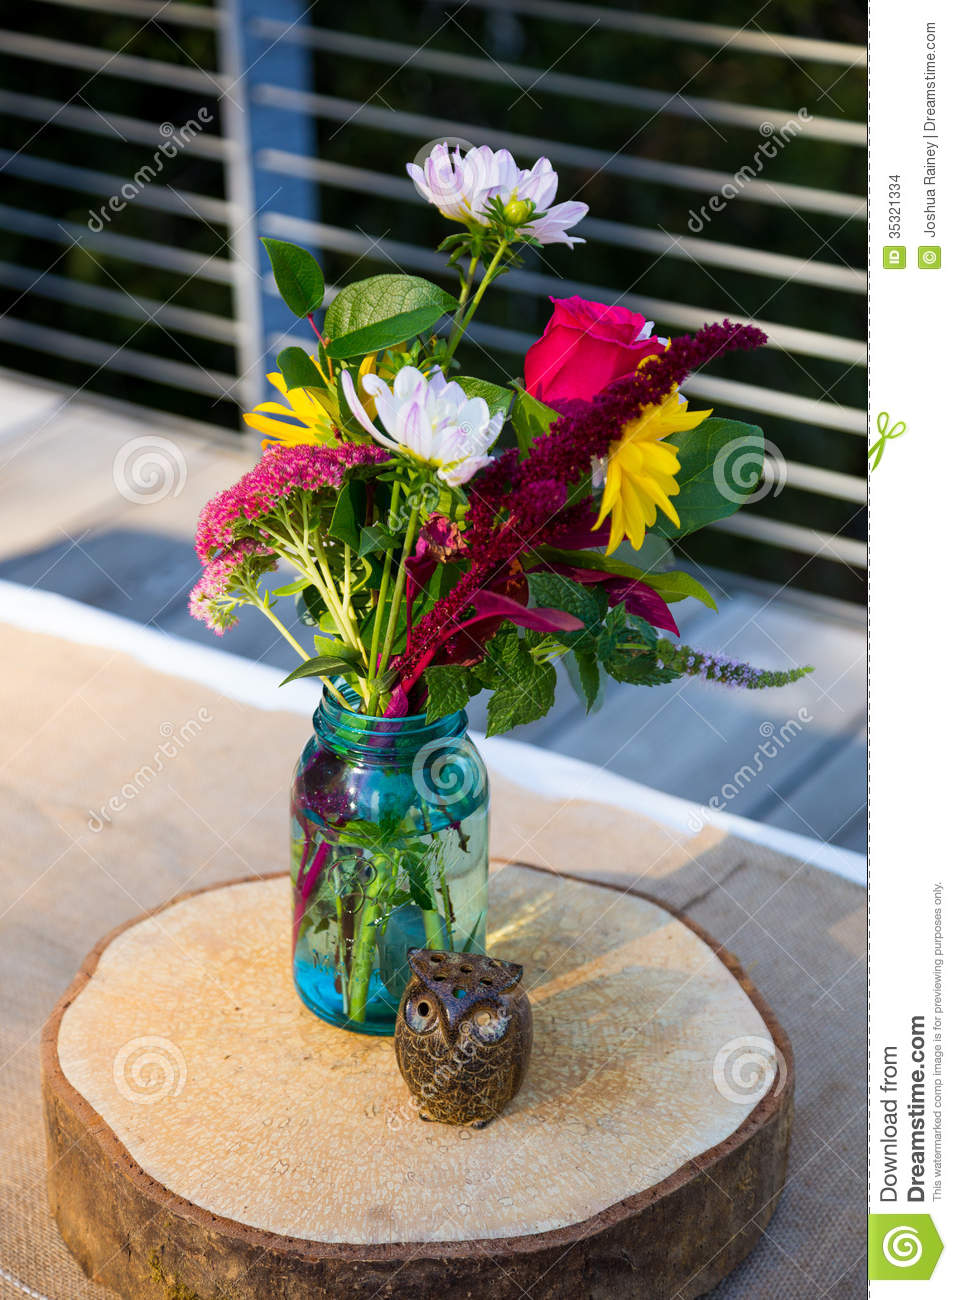 Wooden Owls And Flowers Stock Photo Image Of Centerpieces 35321334